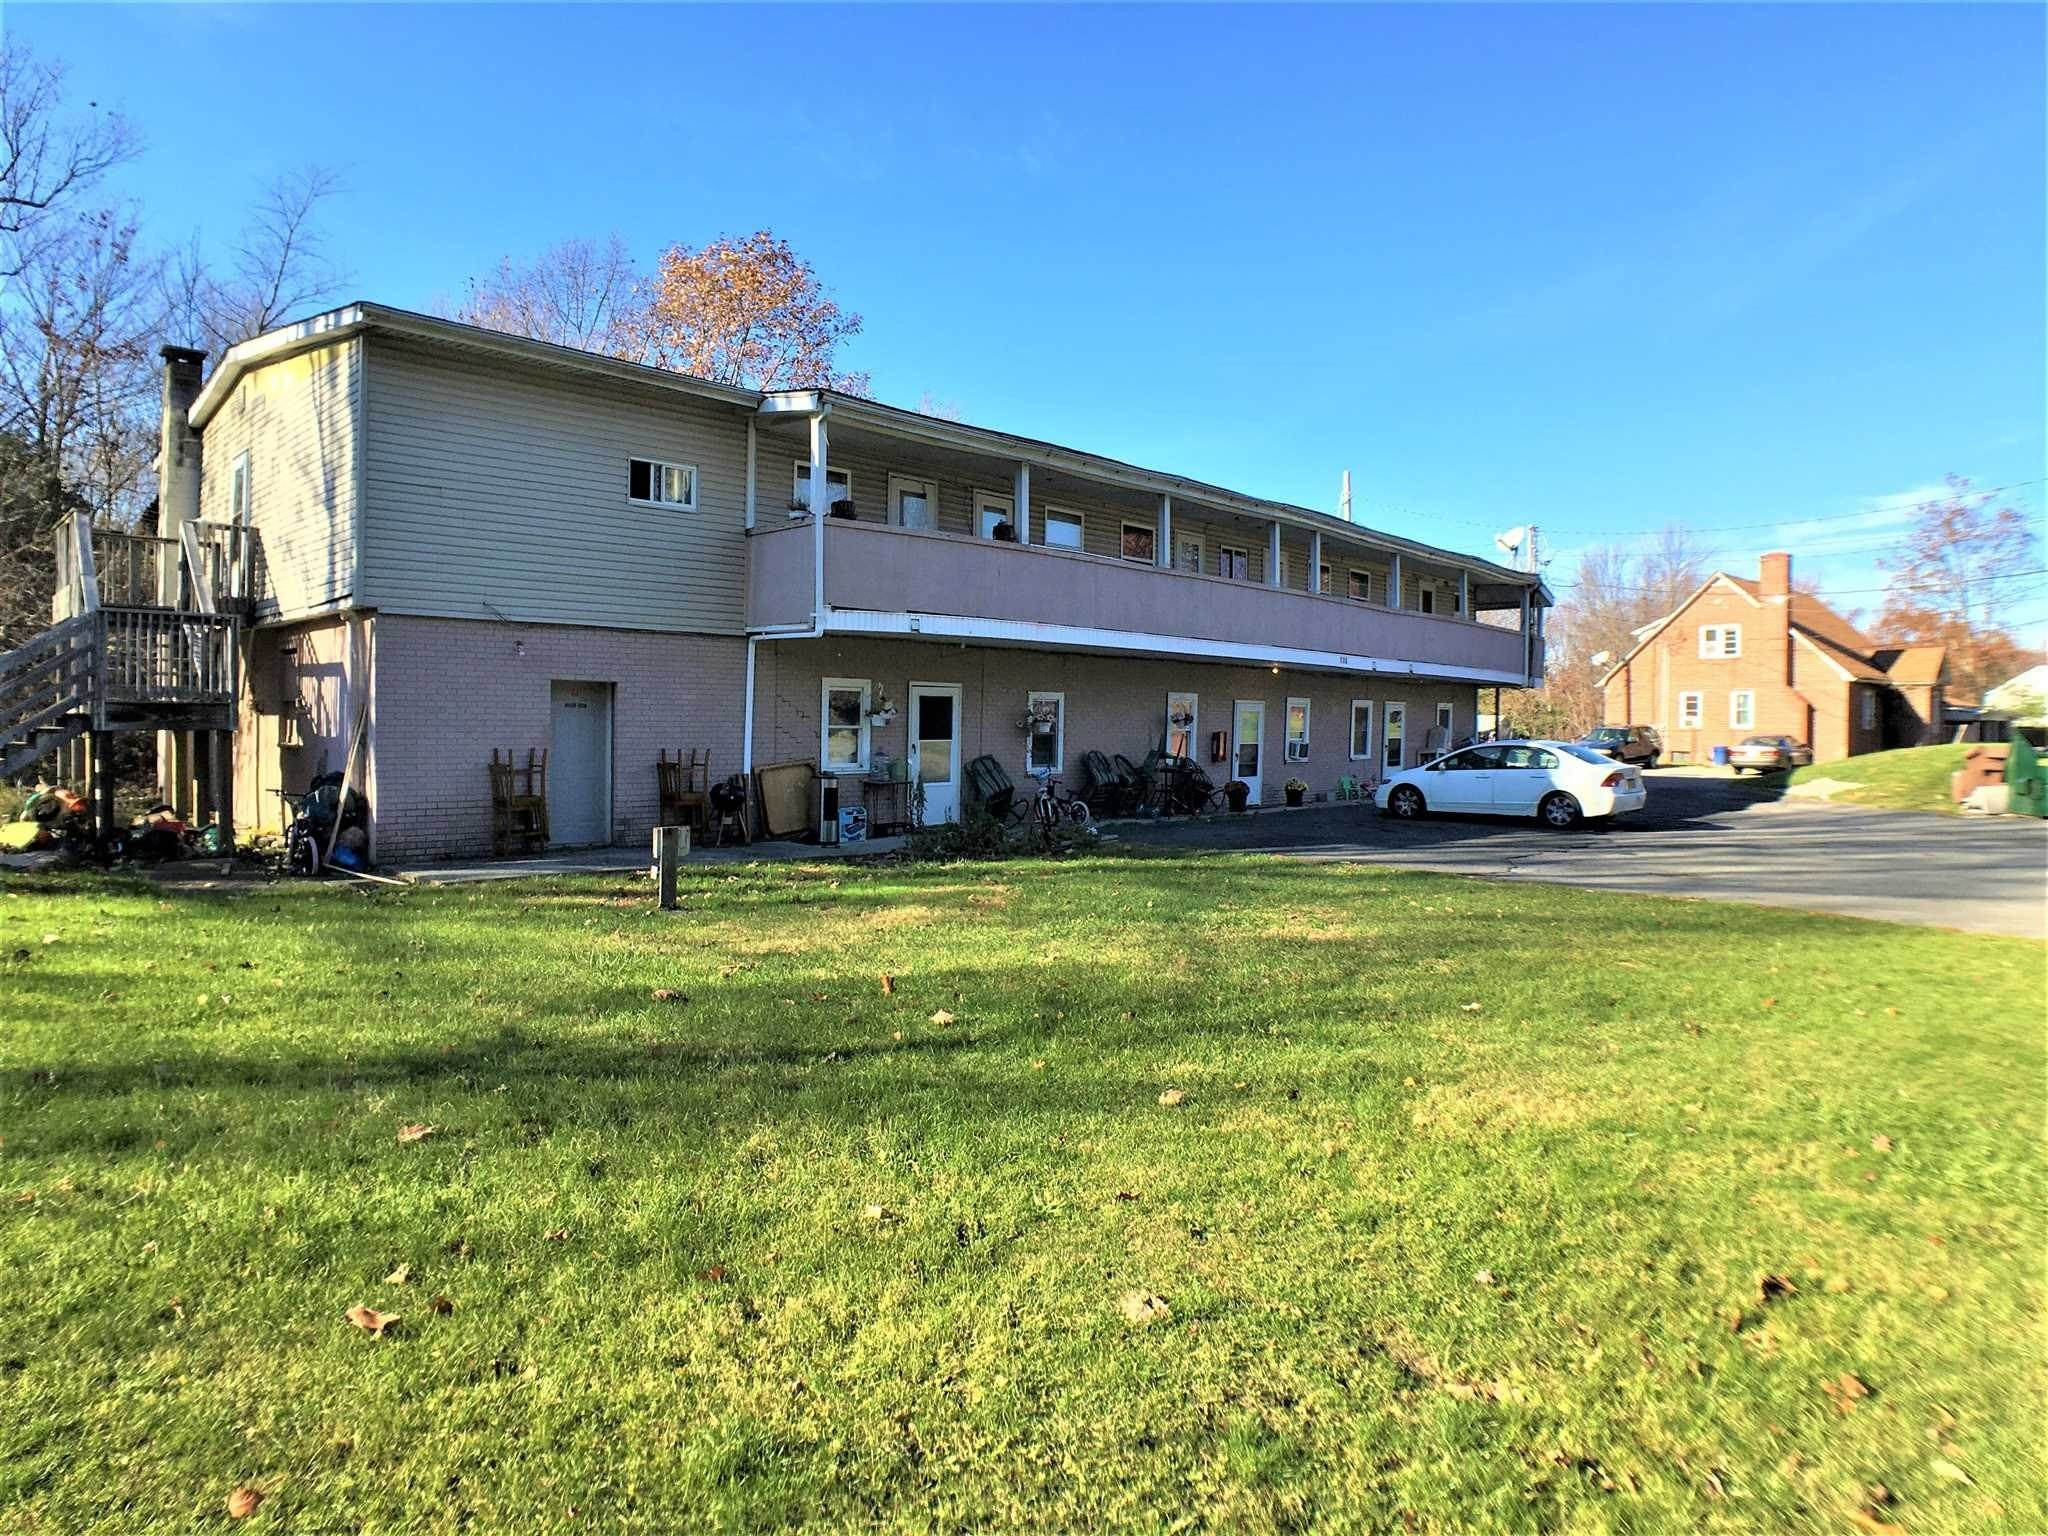 Multi-Family Homes for Sale at 135 FREETOWN Wallkill, New York 12589 United States